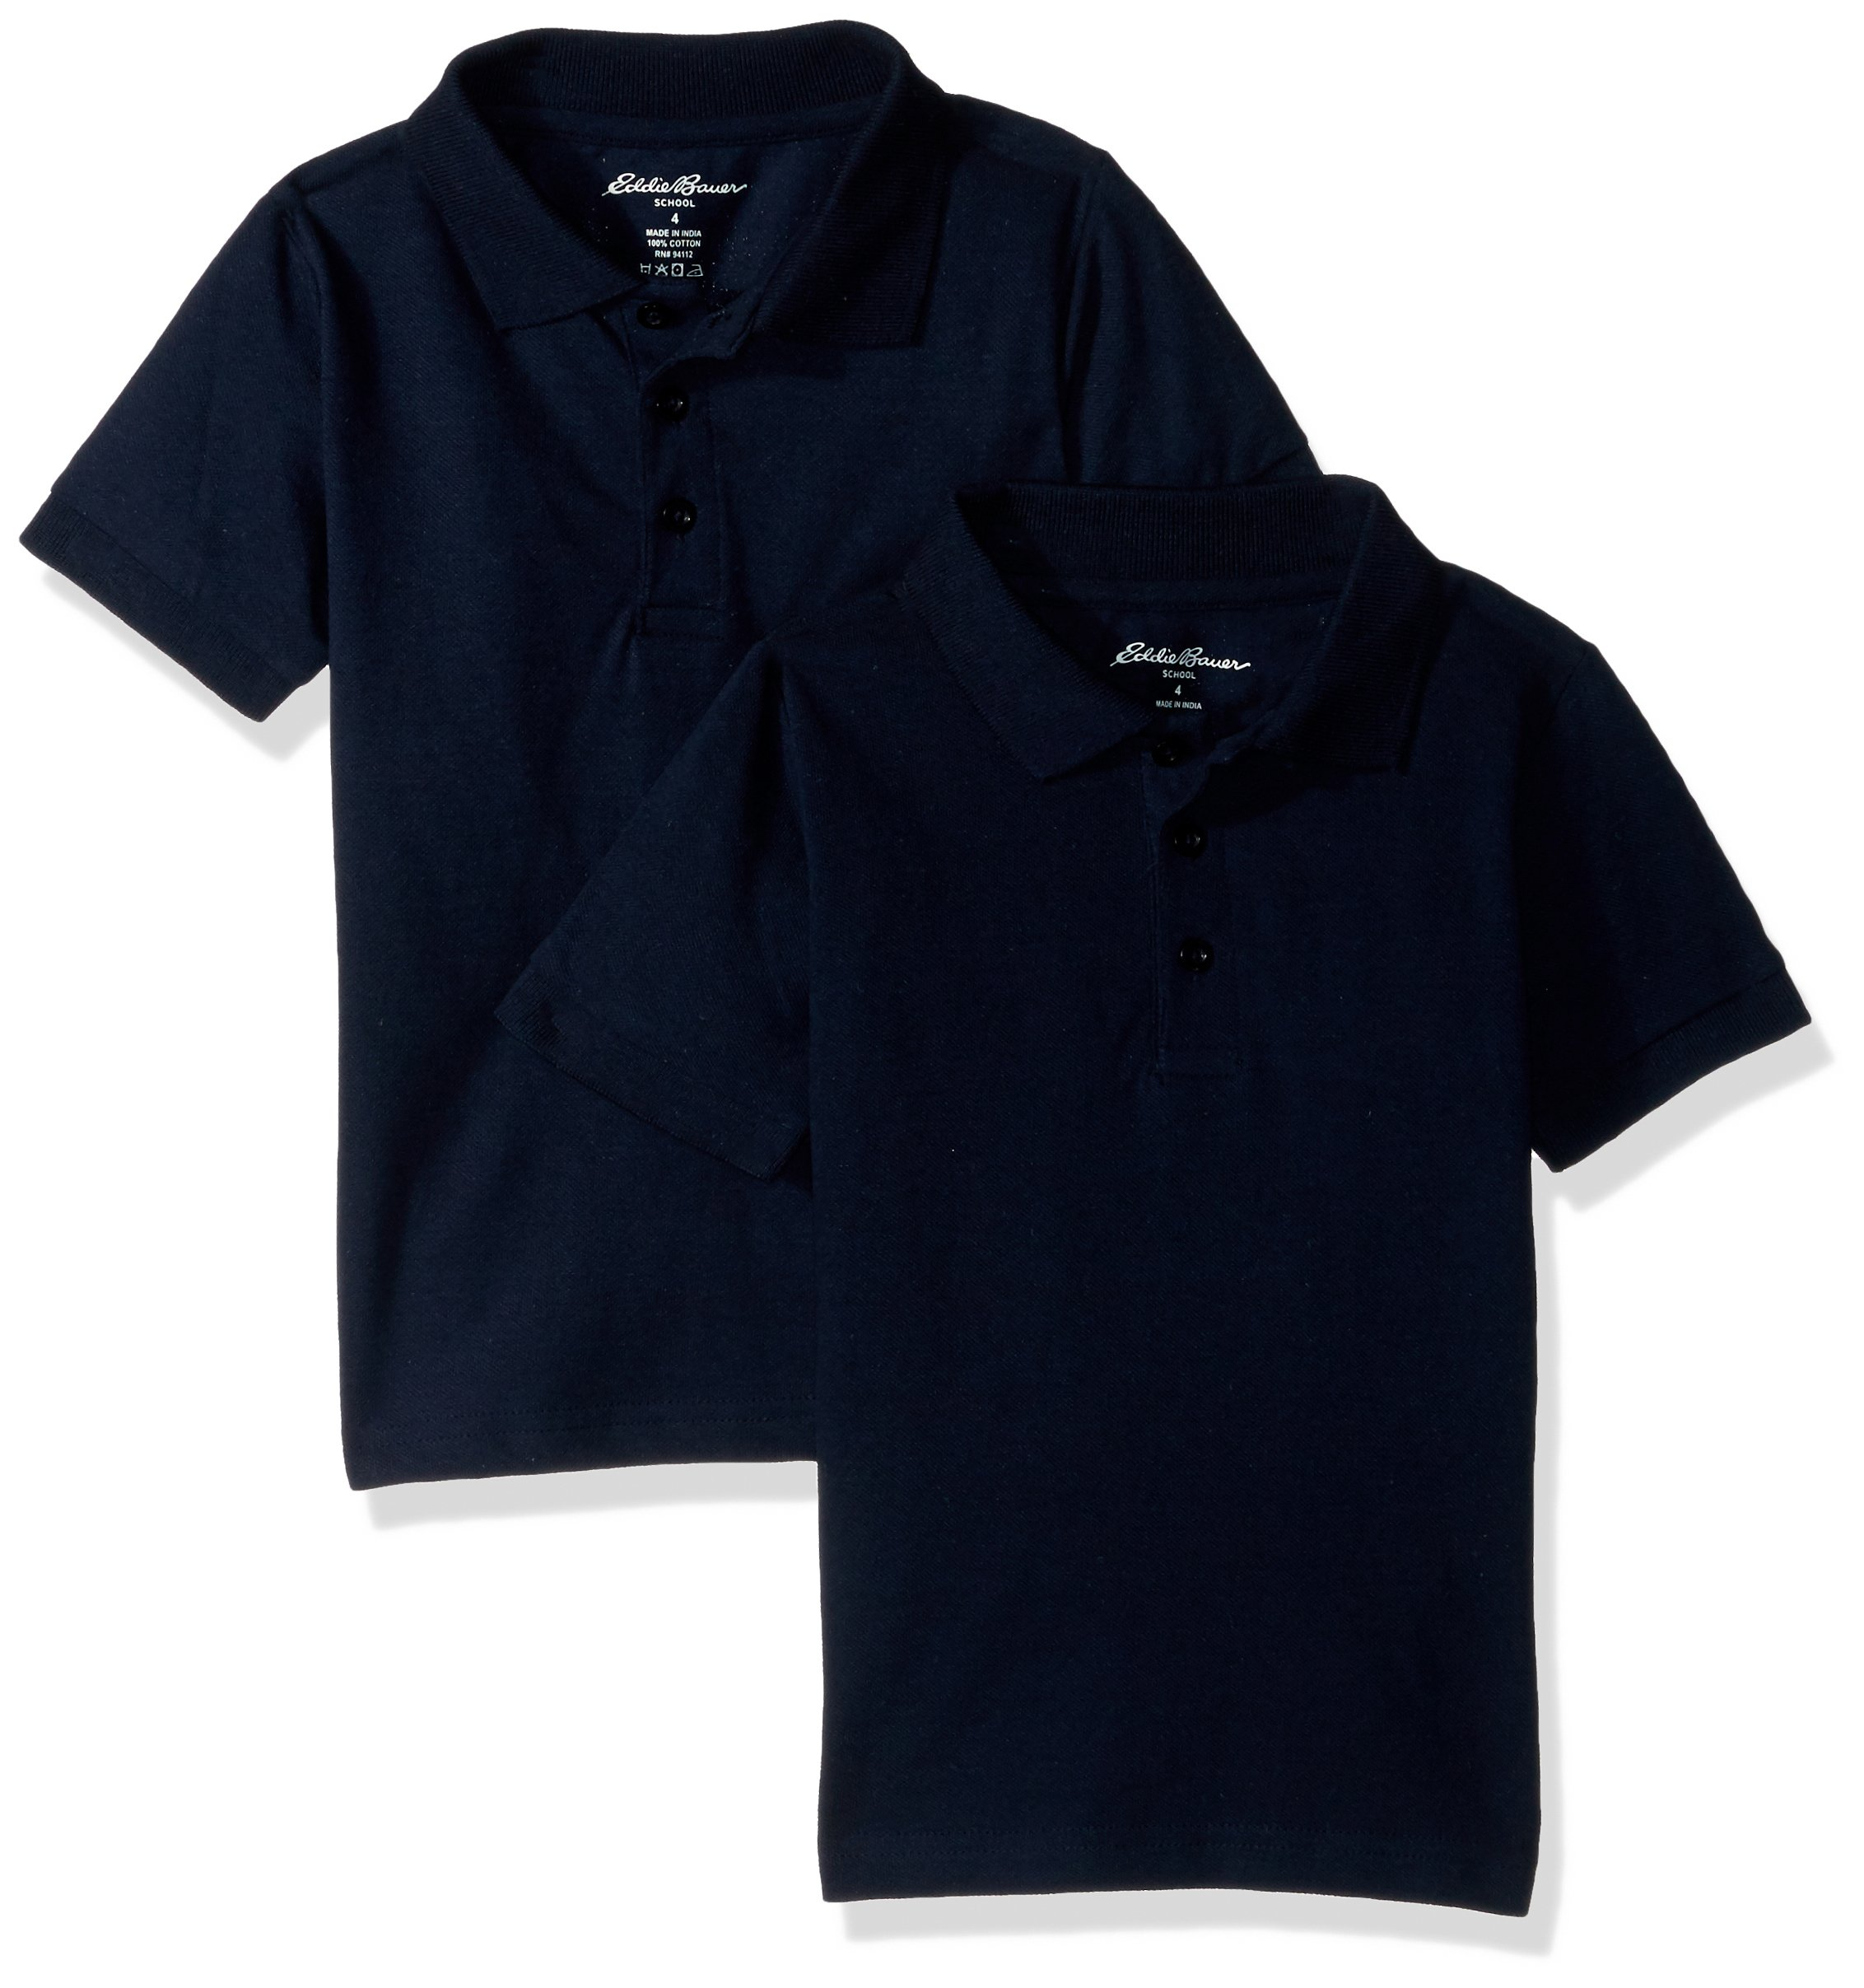 Eddie Bauer Boys' 2 Pack Polo Shirt (More Styles Available), Bright Navy Blue, 14/16